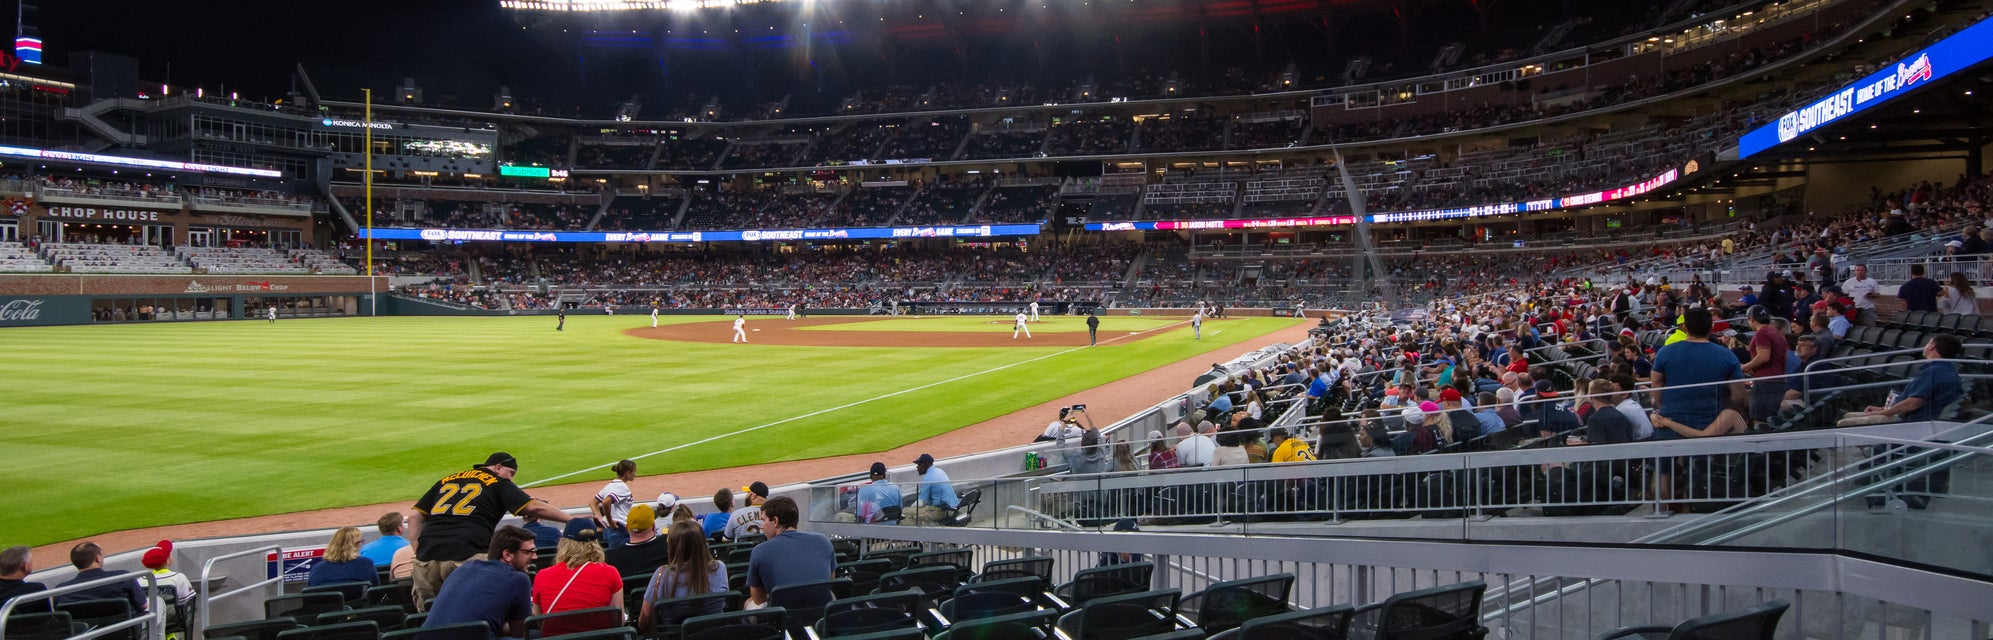 Seat view from Dugout Corner